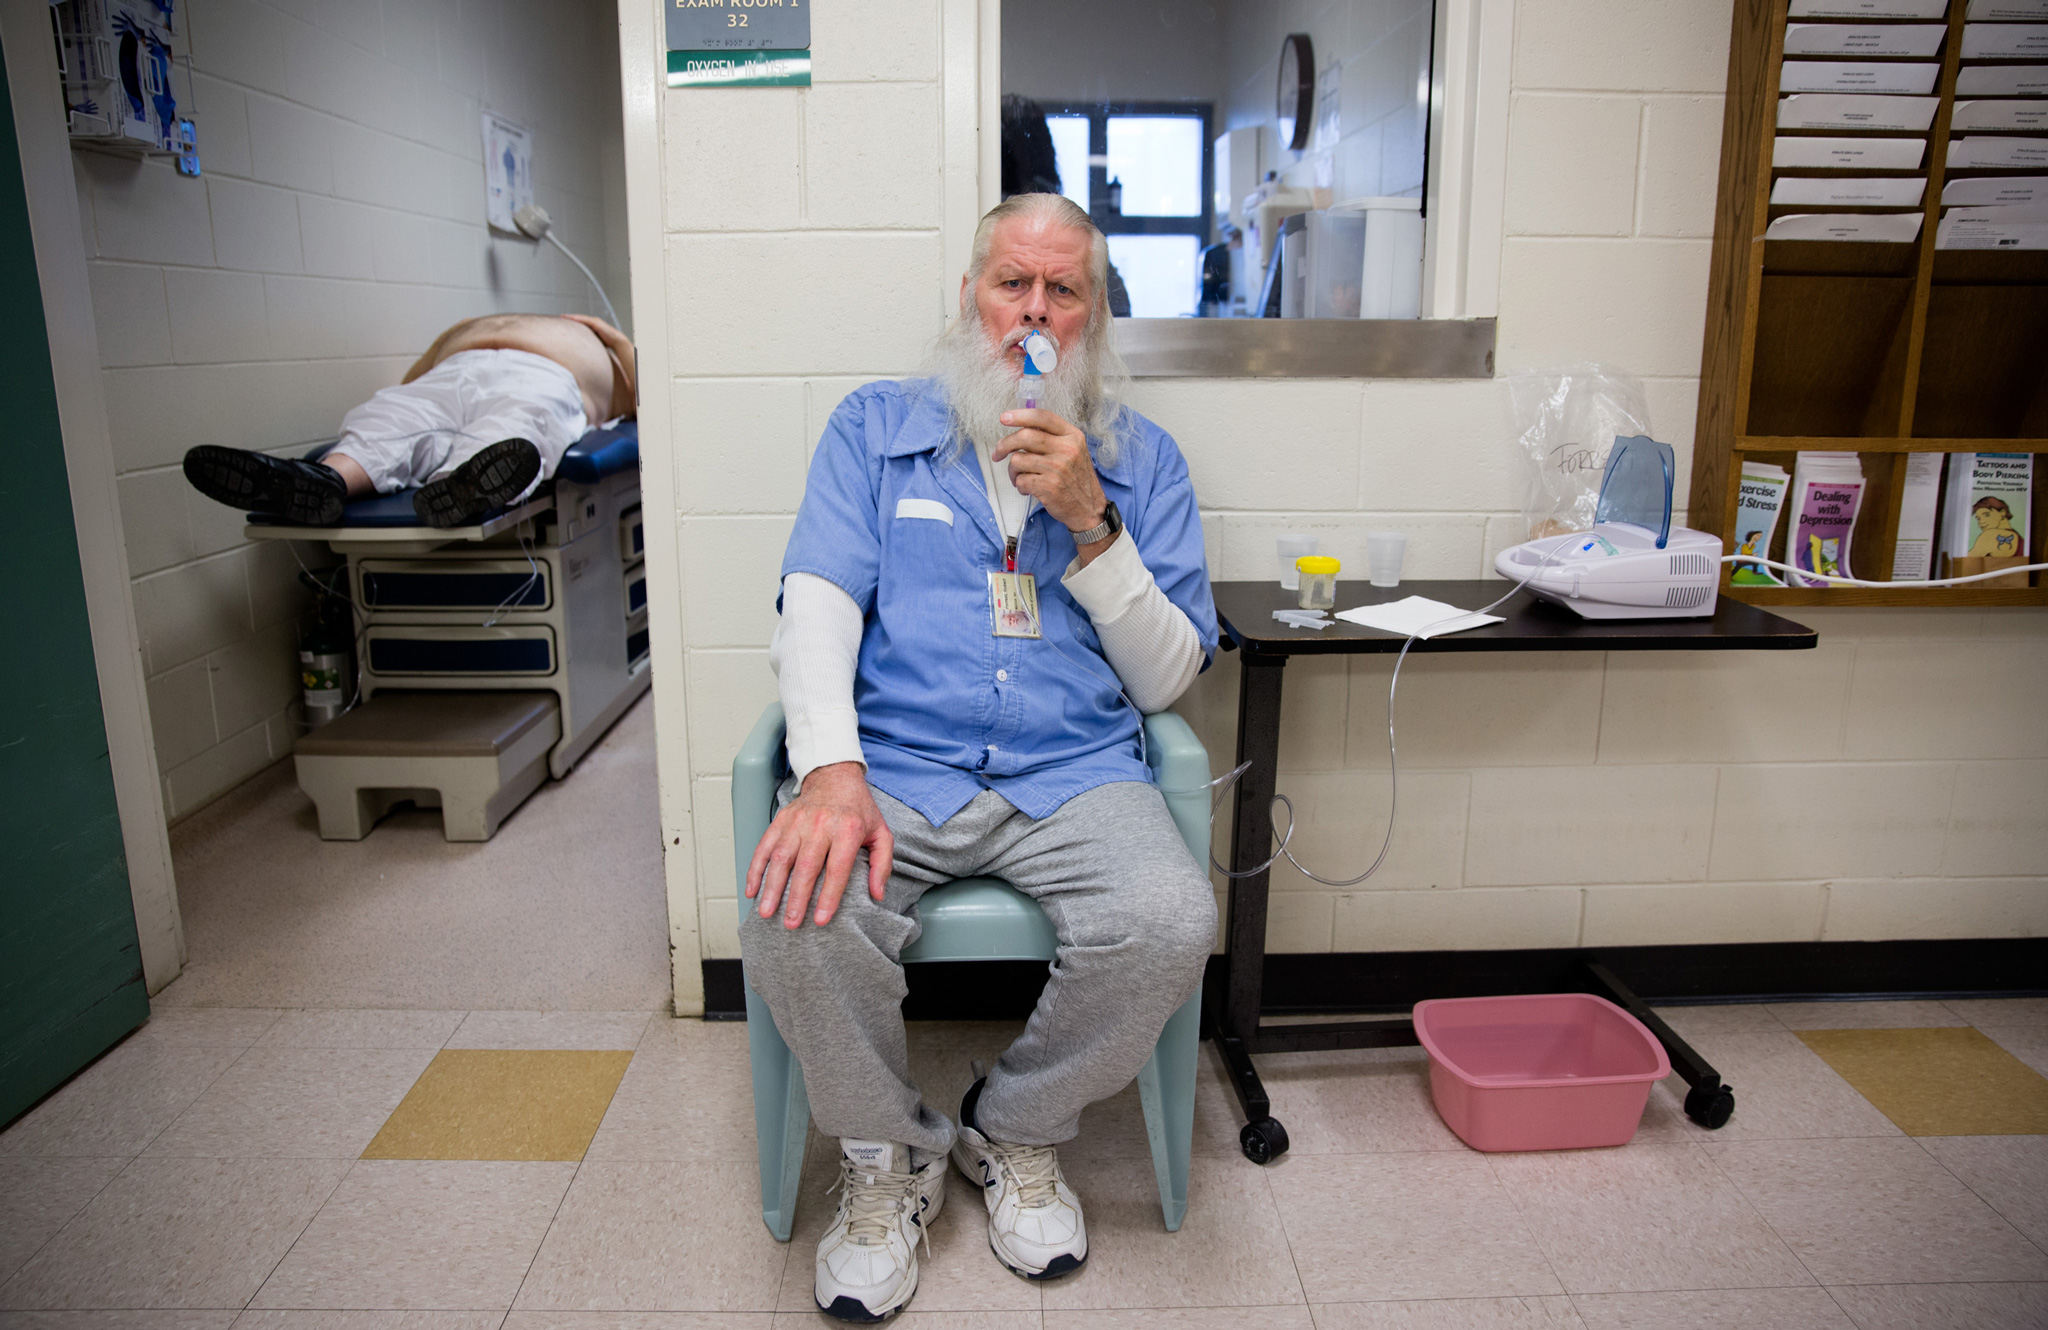 Robert, 70, is in prison medical four times daily for respiratory problems.  Prison systems across the country are facing a crisis as their populations gray. Rising medical costs are a factor in the growing costs of incarceration nationwide. Robert's medicial expenses cost the country between three and nine times more than the medical needs of a younger imate.